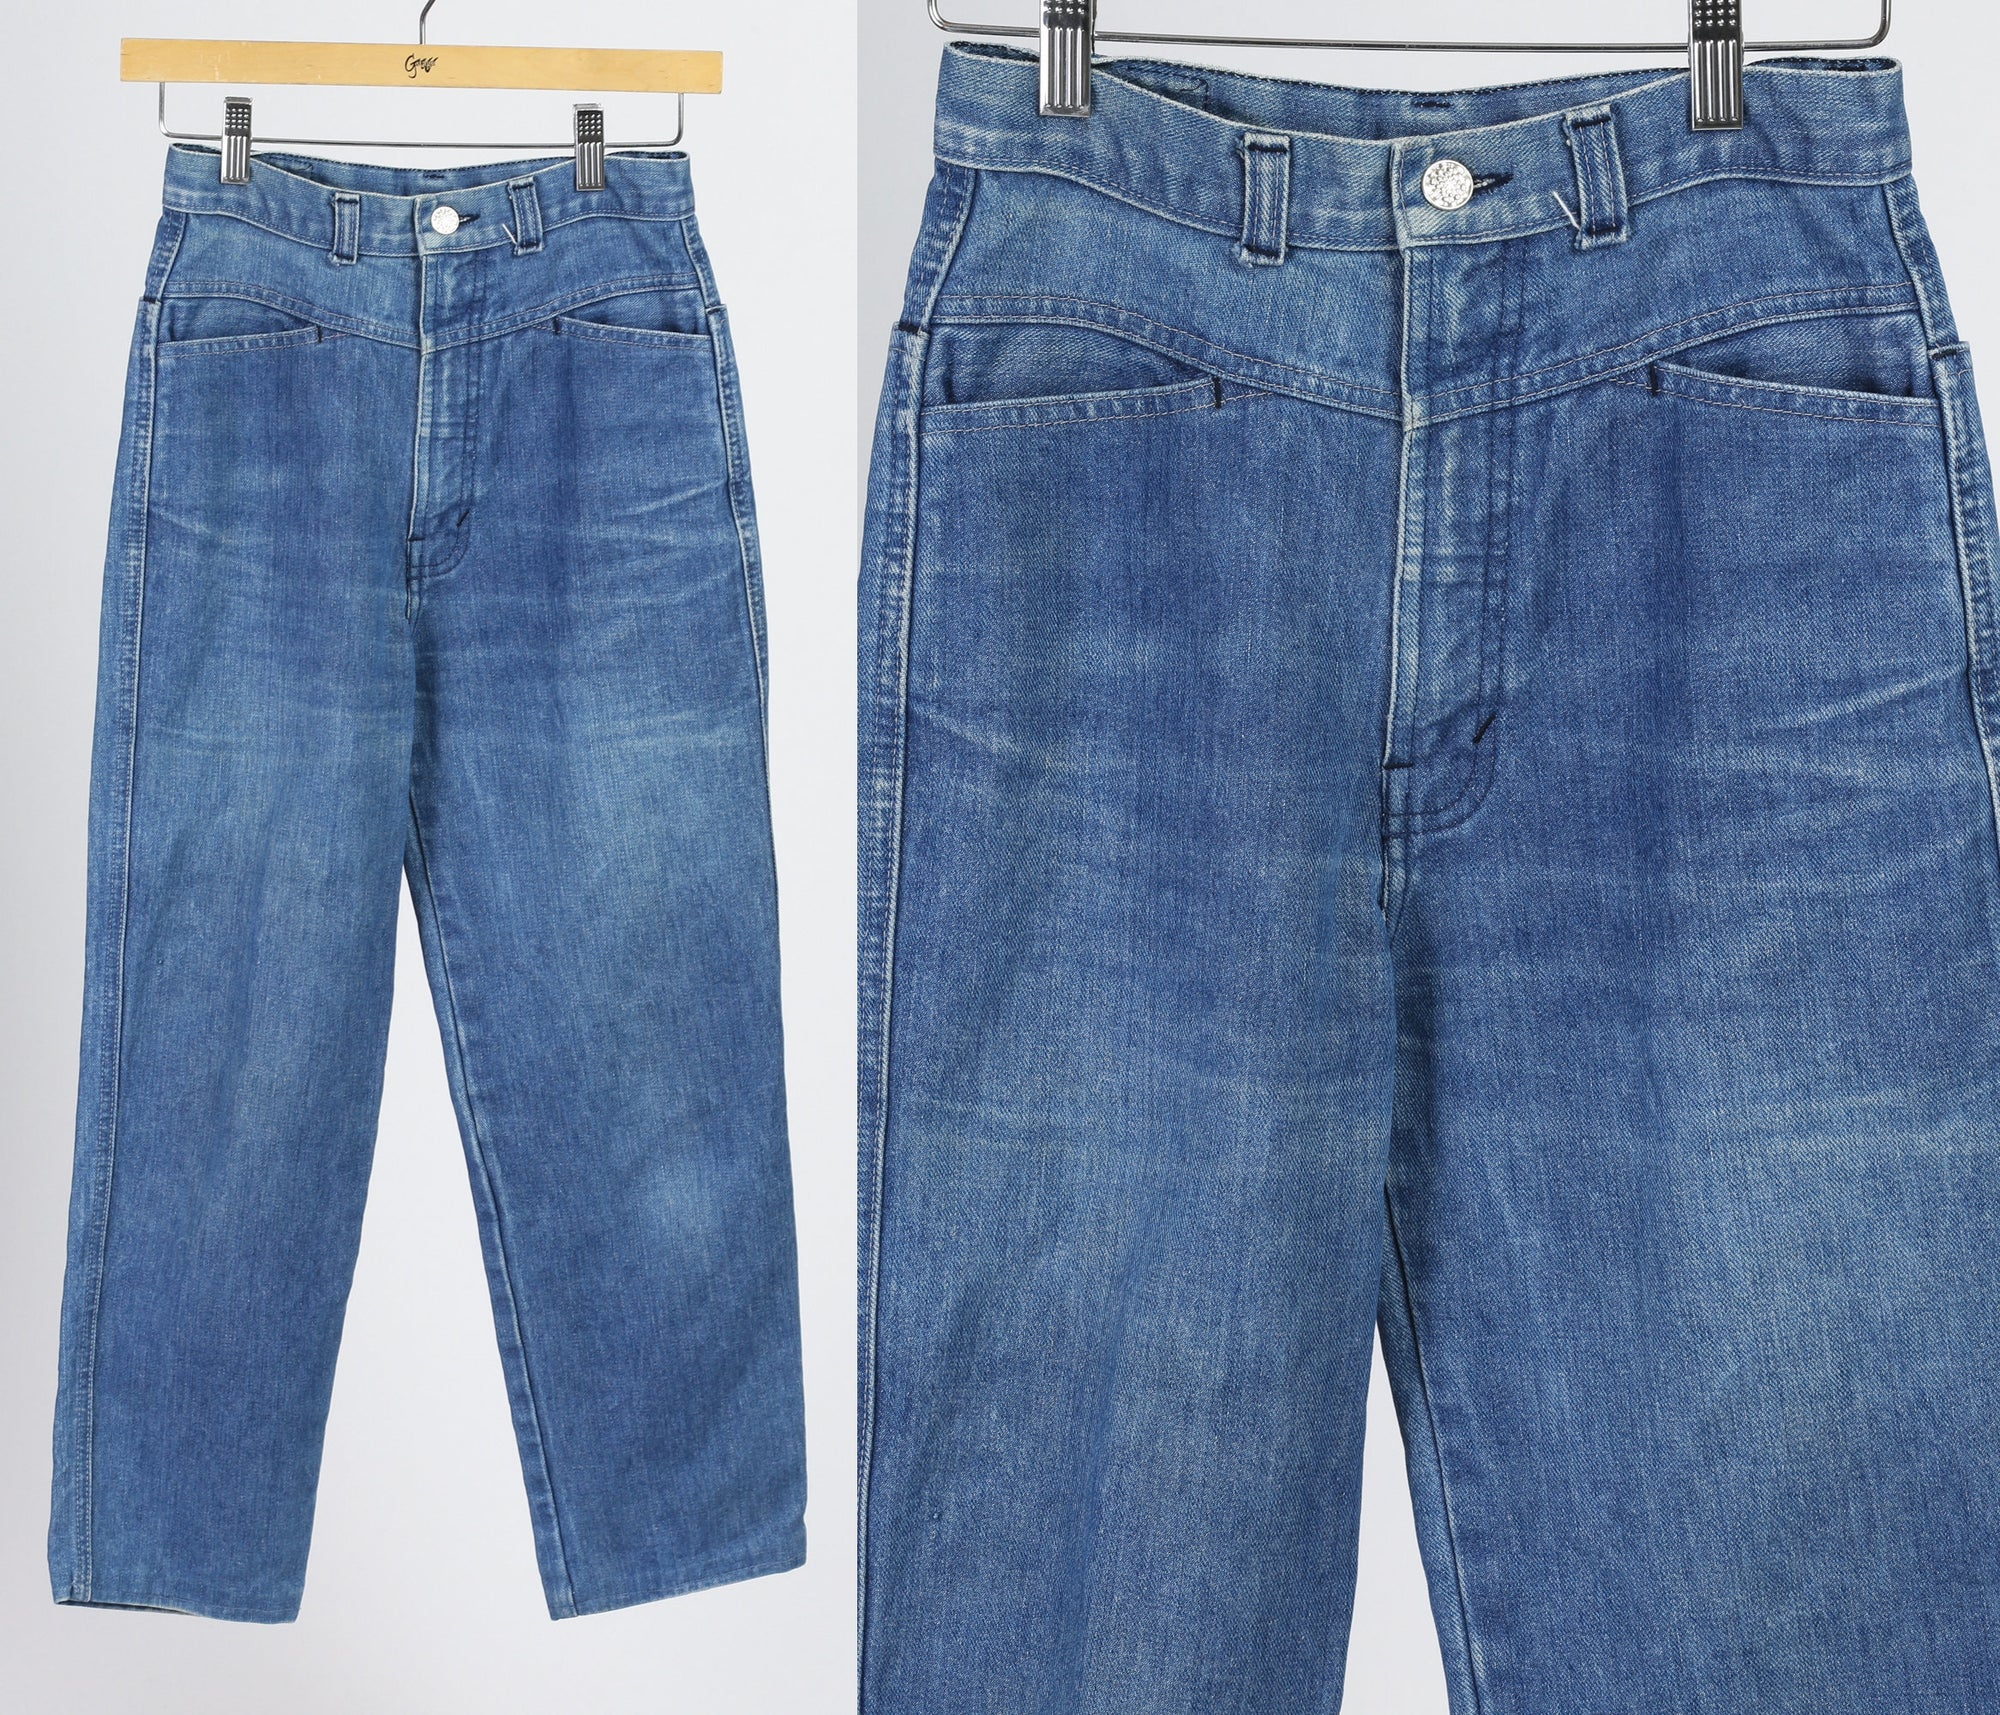 90s Rocky Mountain High Waist Western Mom Jeans - Petite Small